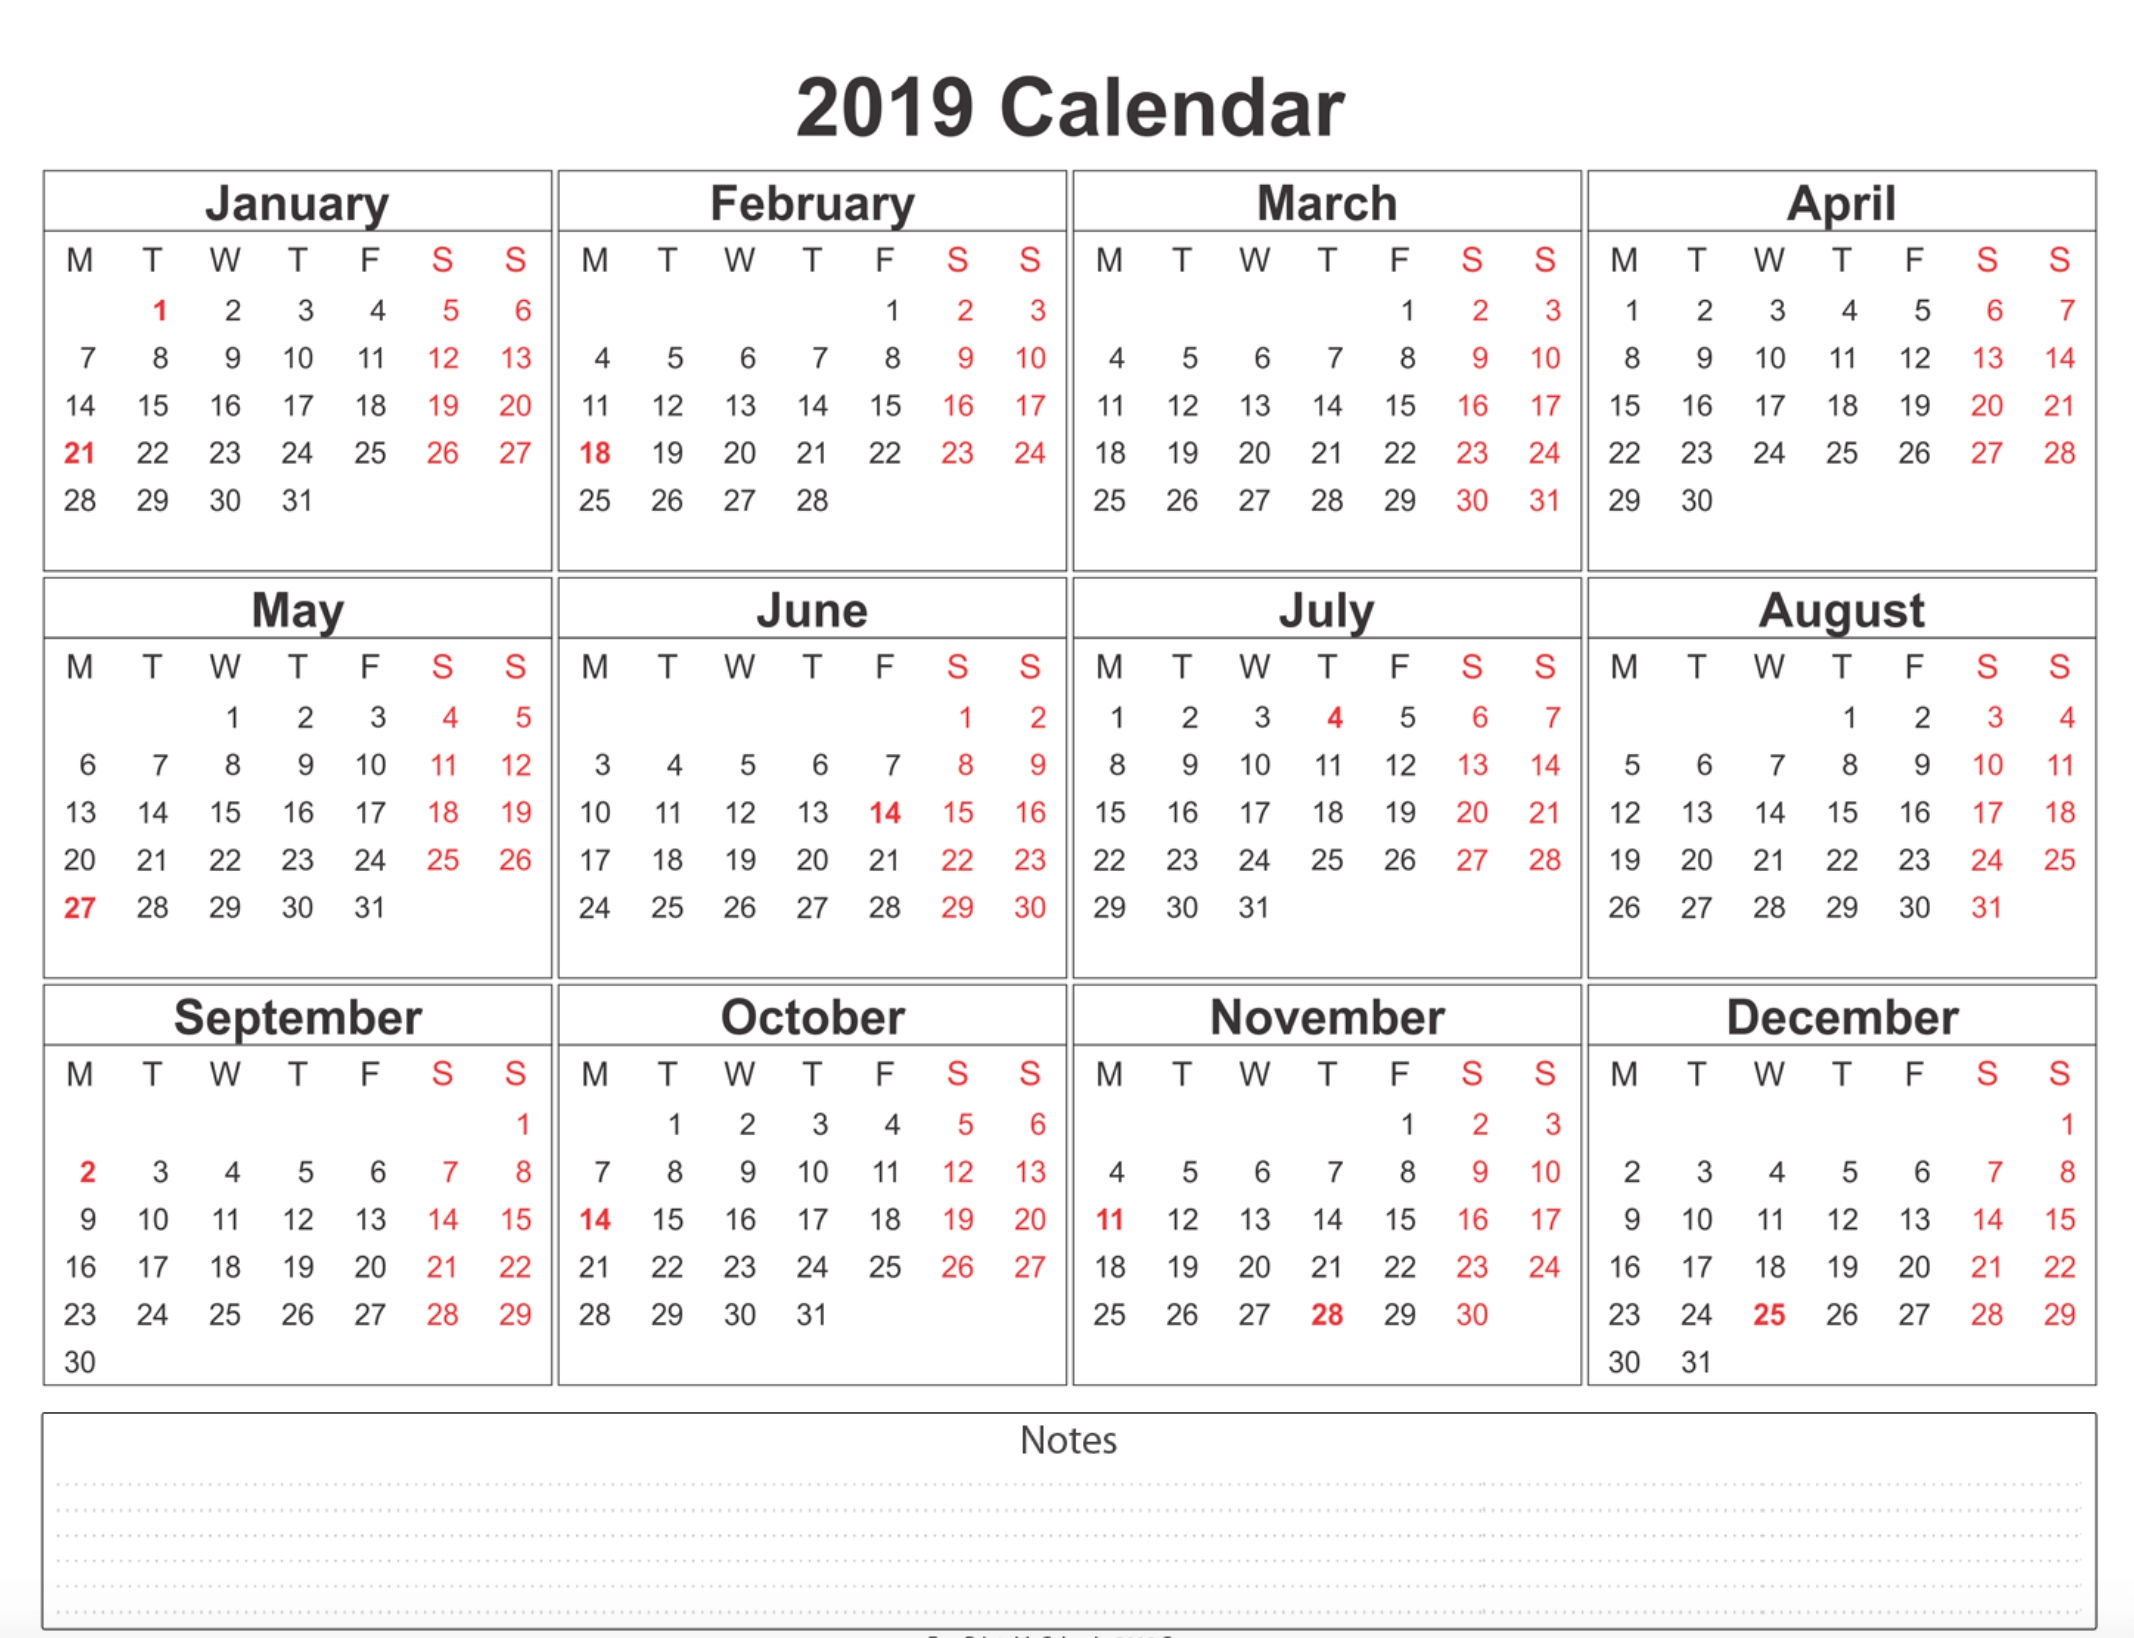 Free Printable Calendar 2019 With Holidays | Blank 12 Month Calendar Calendar 2019 Monthly Pdf